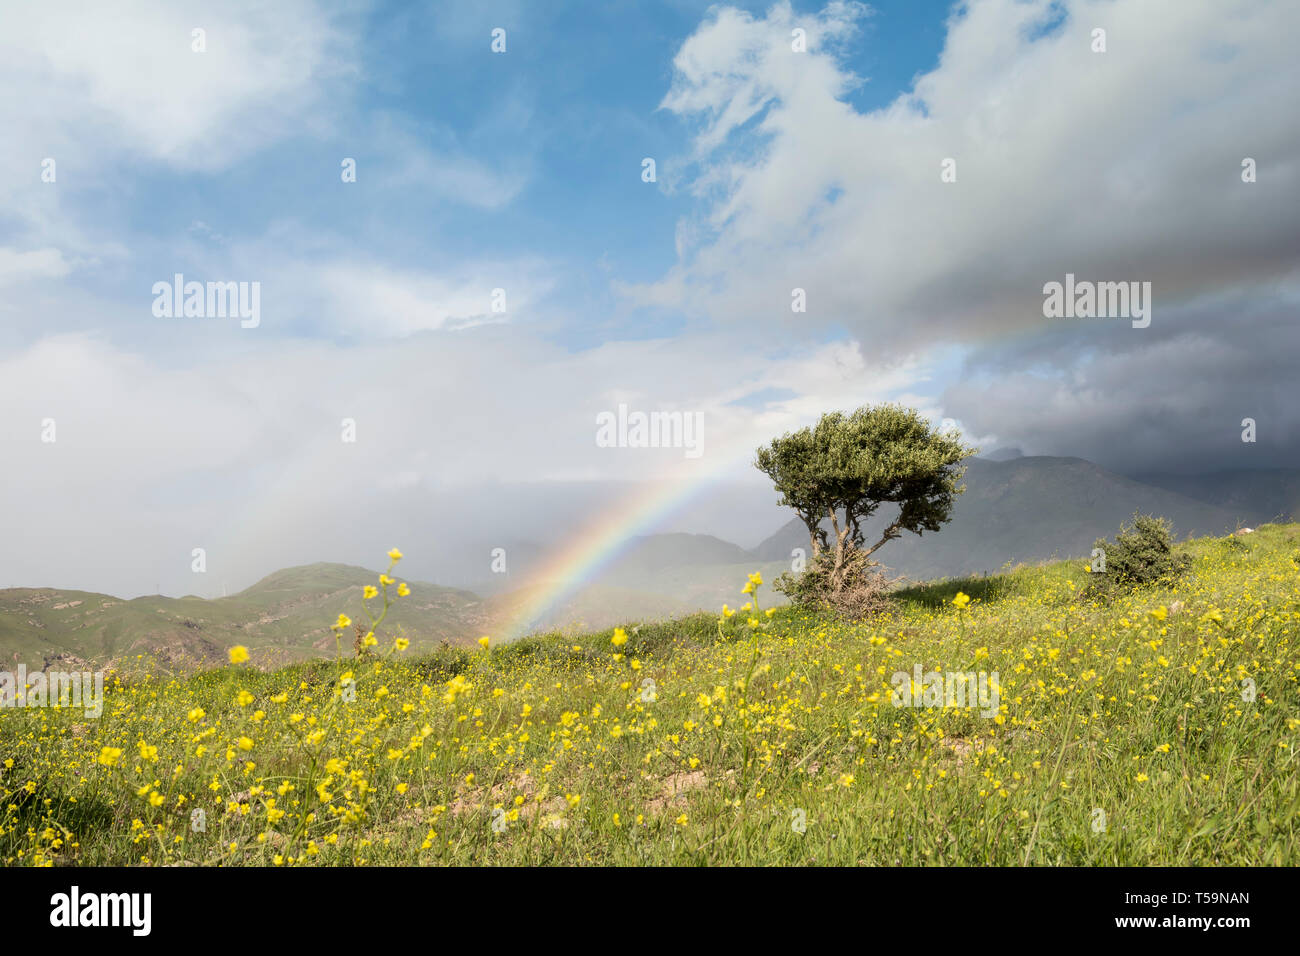 Alone olive tree and rainbow at spring time grass field with yellow flowers, beautiful colors in nature - Stock Image